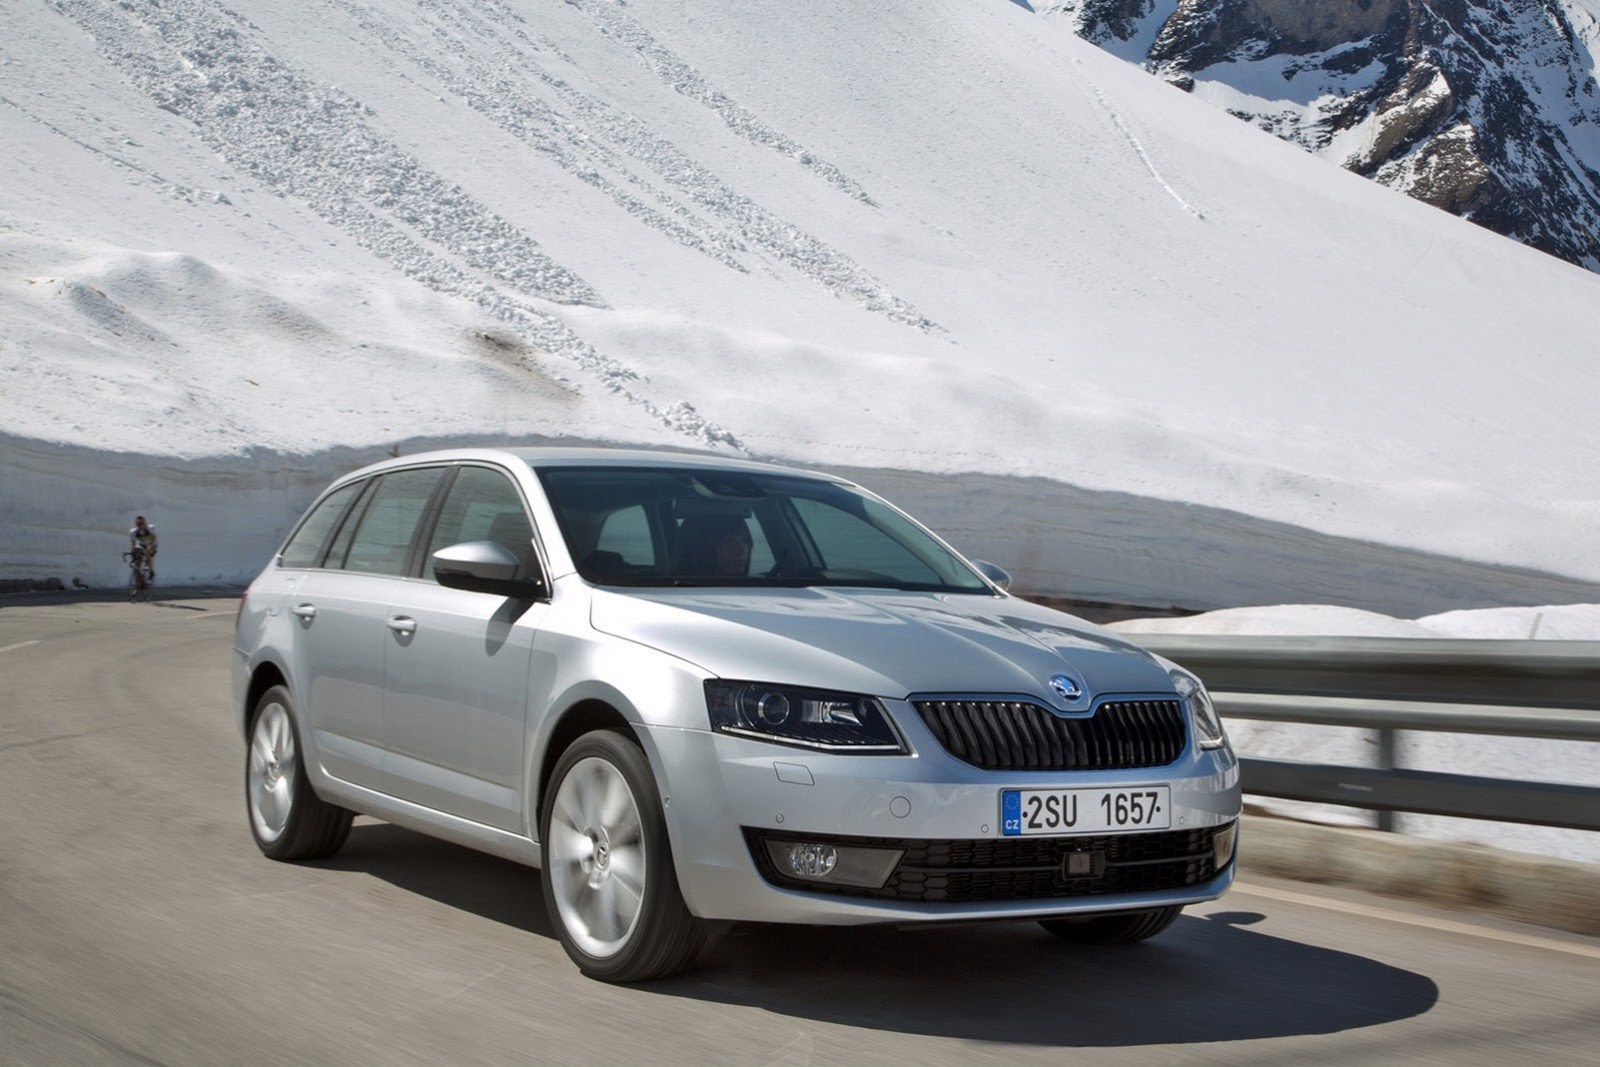 Skoda Octavia Combi Limited Edition GT photo 16